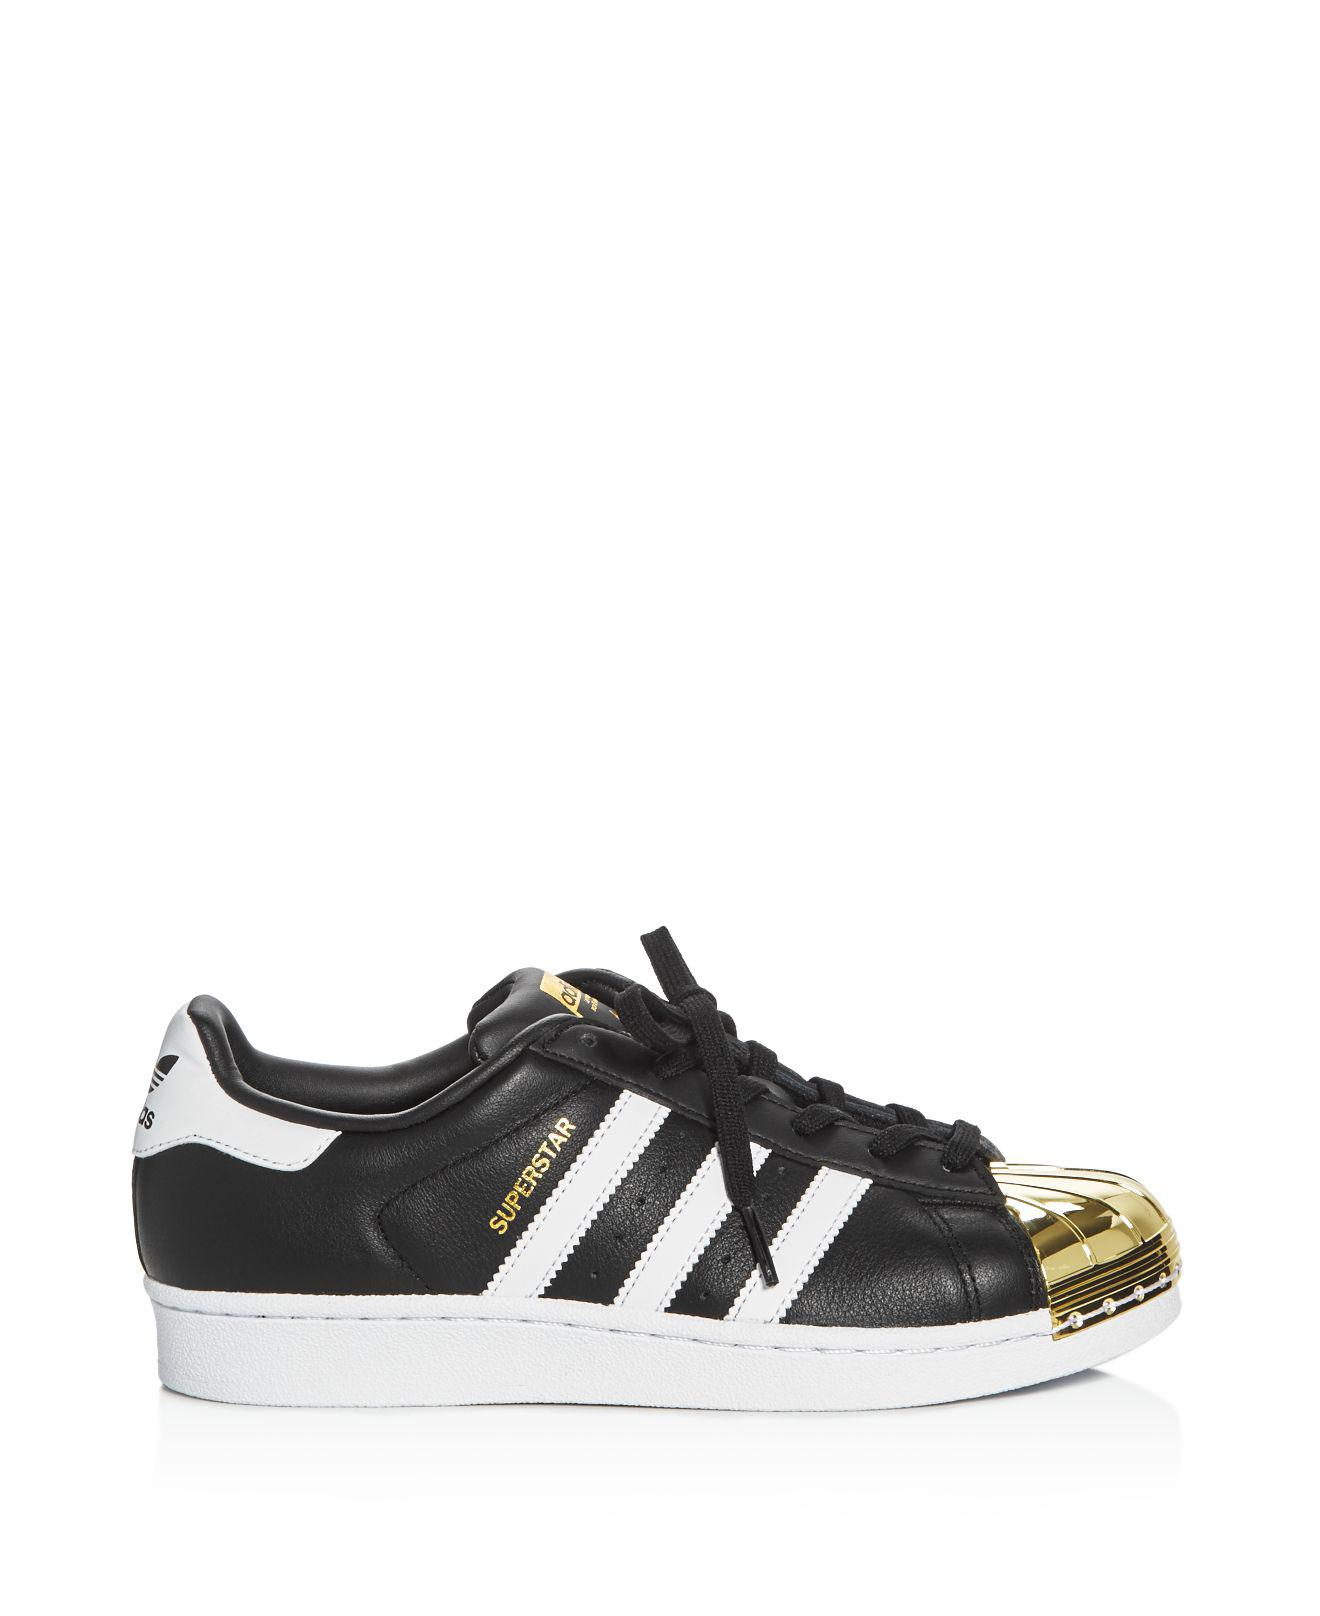 adidas Originals Leather Women's Superstar Metallic Toe Lace Up Sneakers in Black/White/Gold (Black)